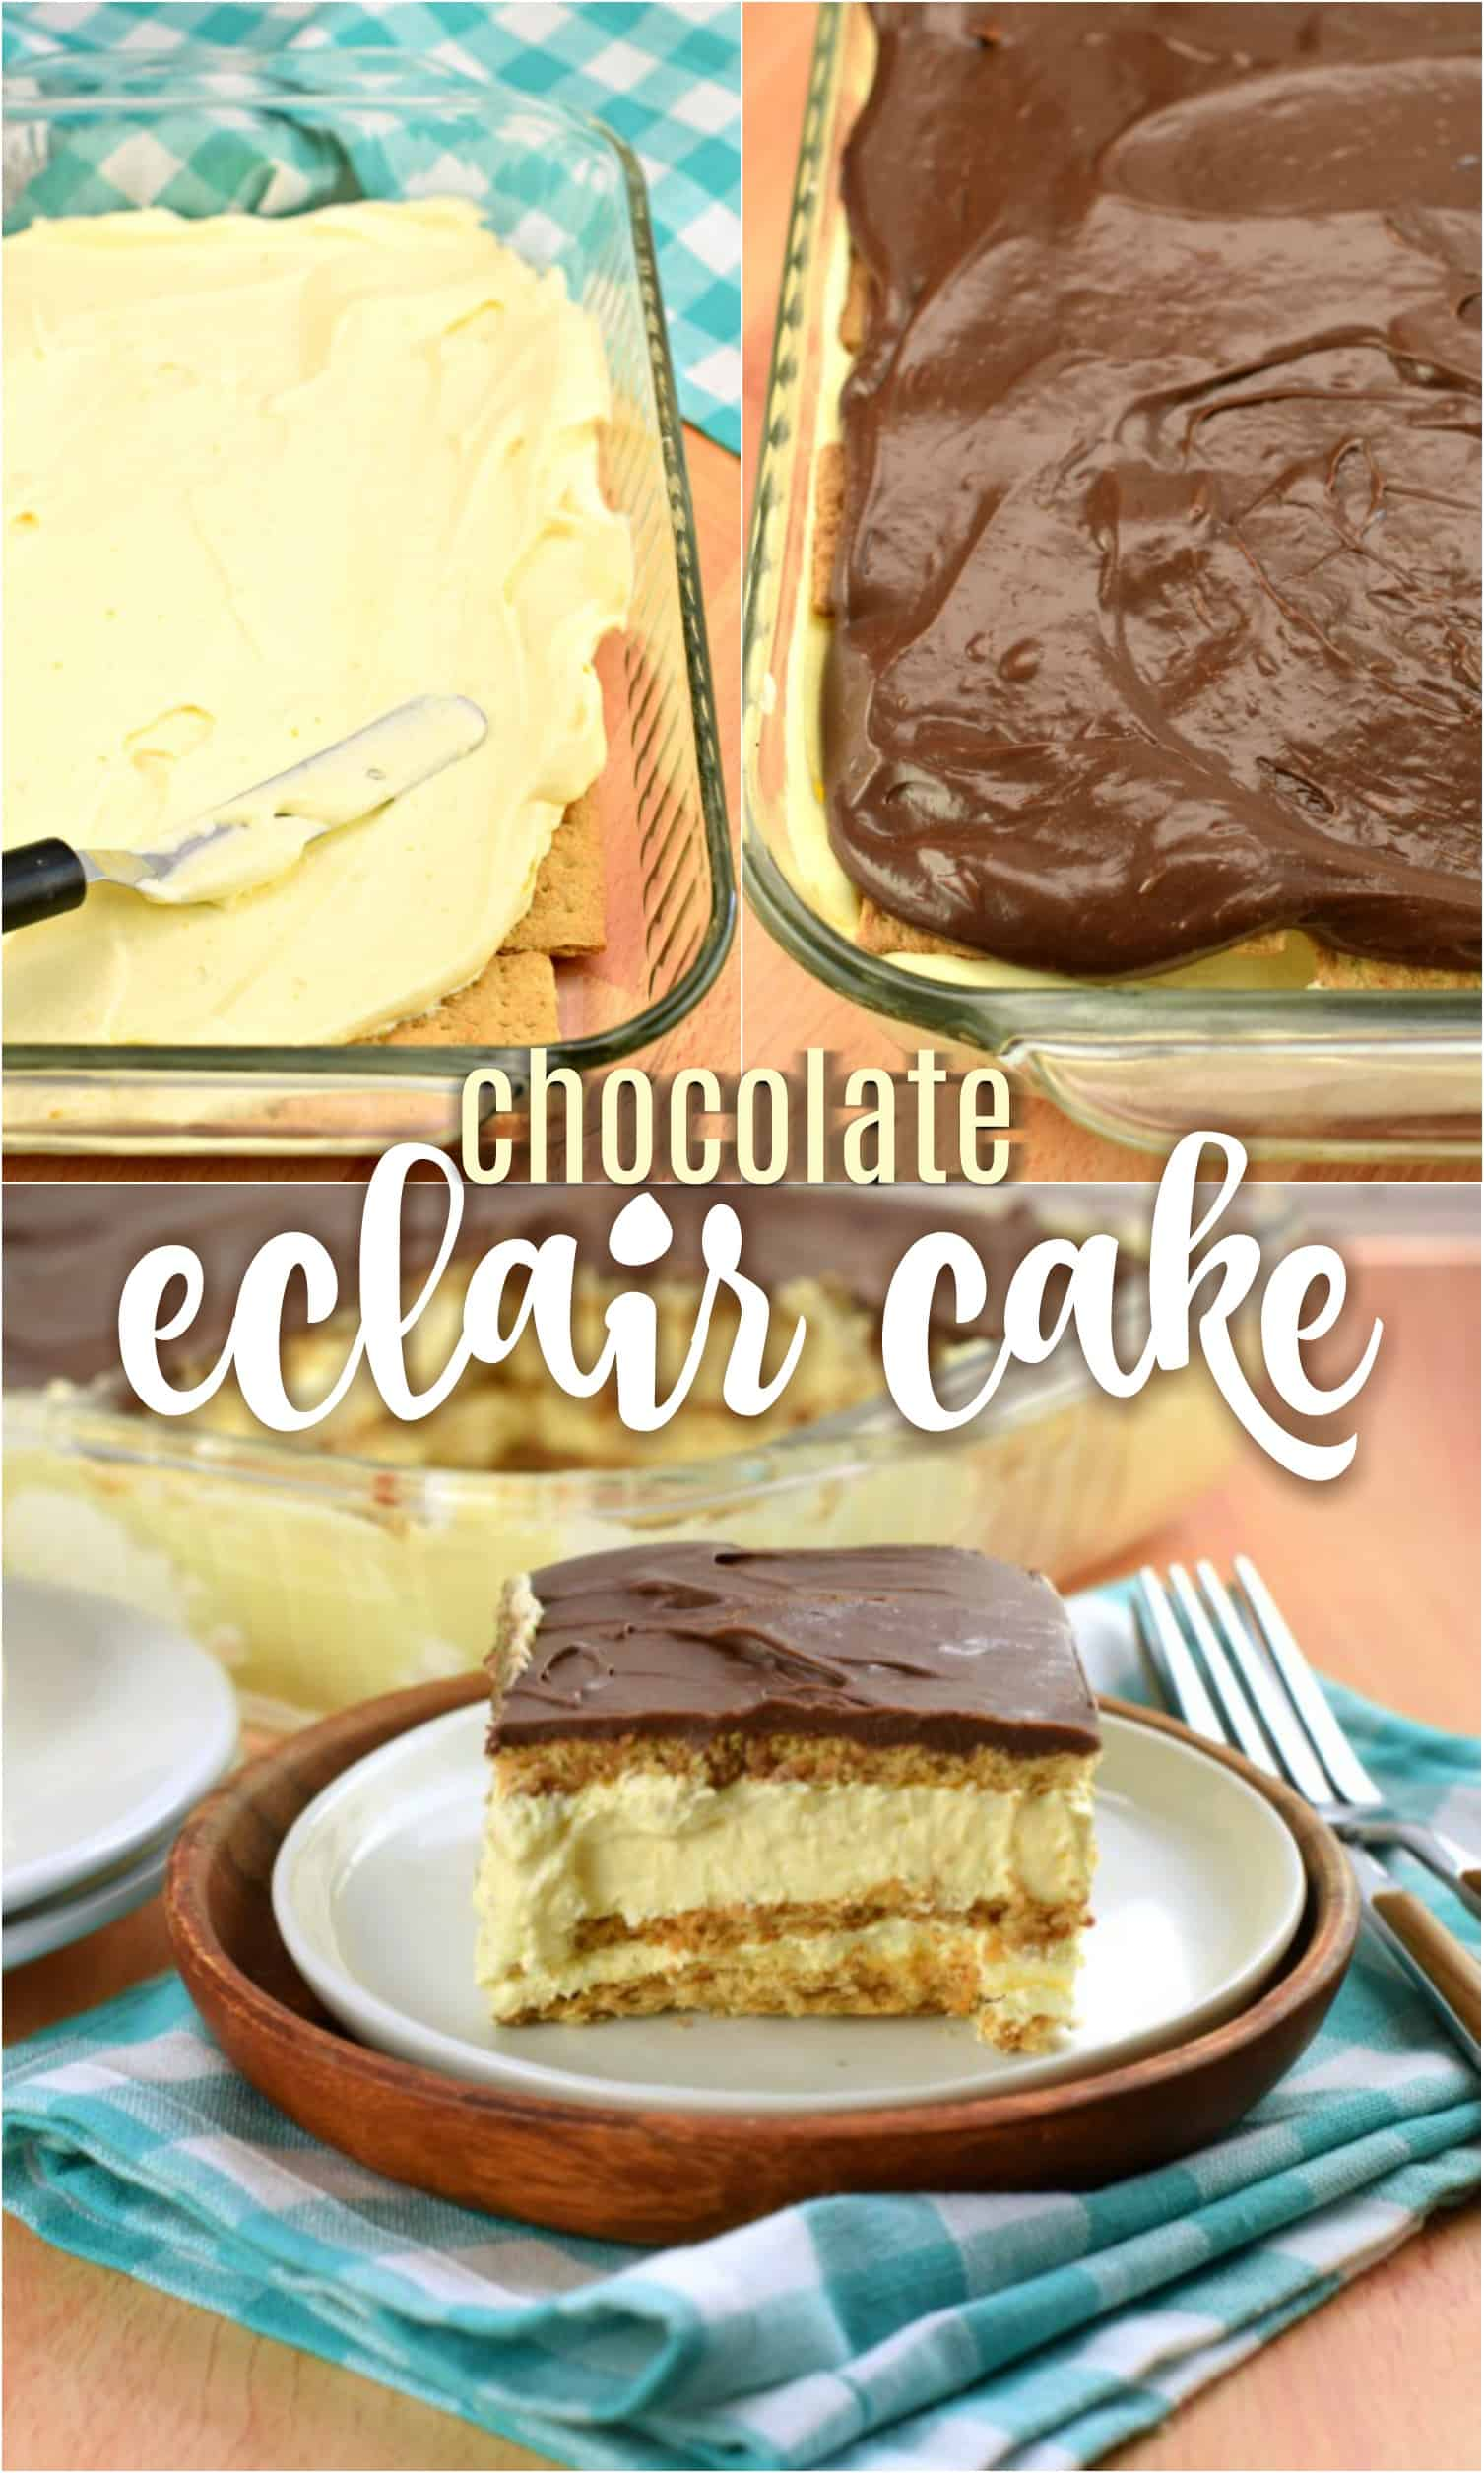 How to make chocolate eclair cake image